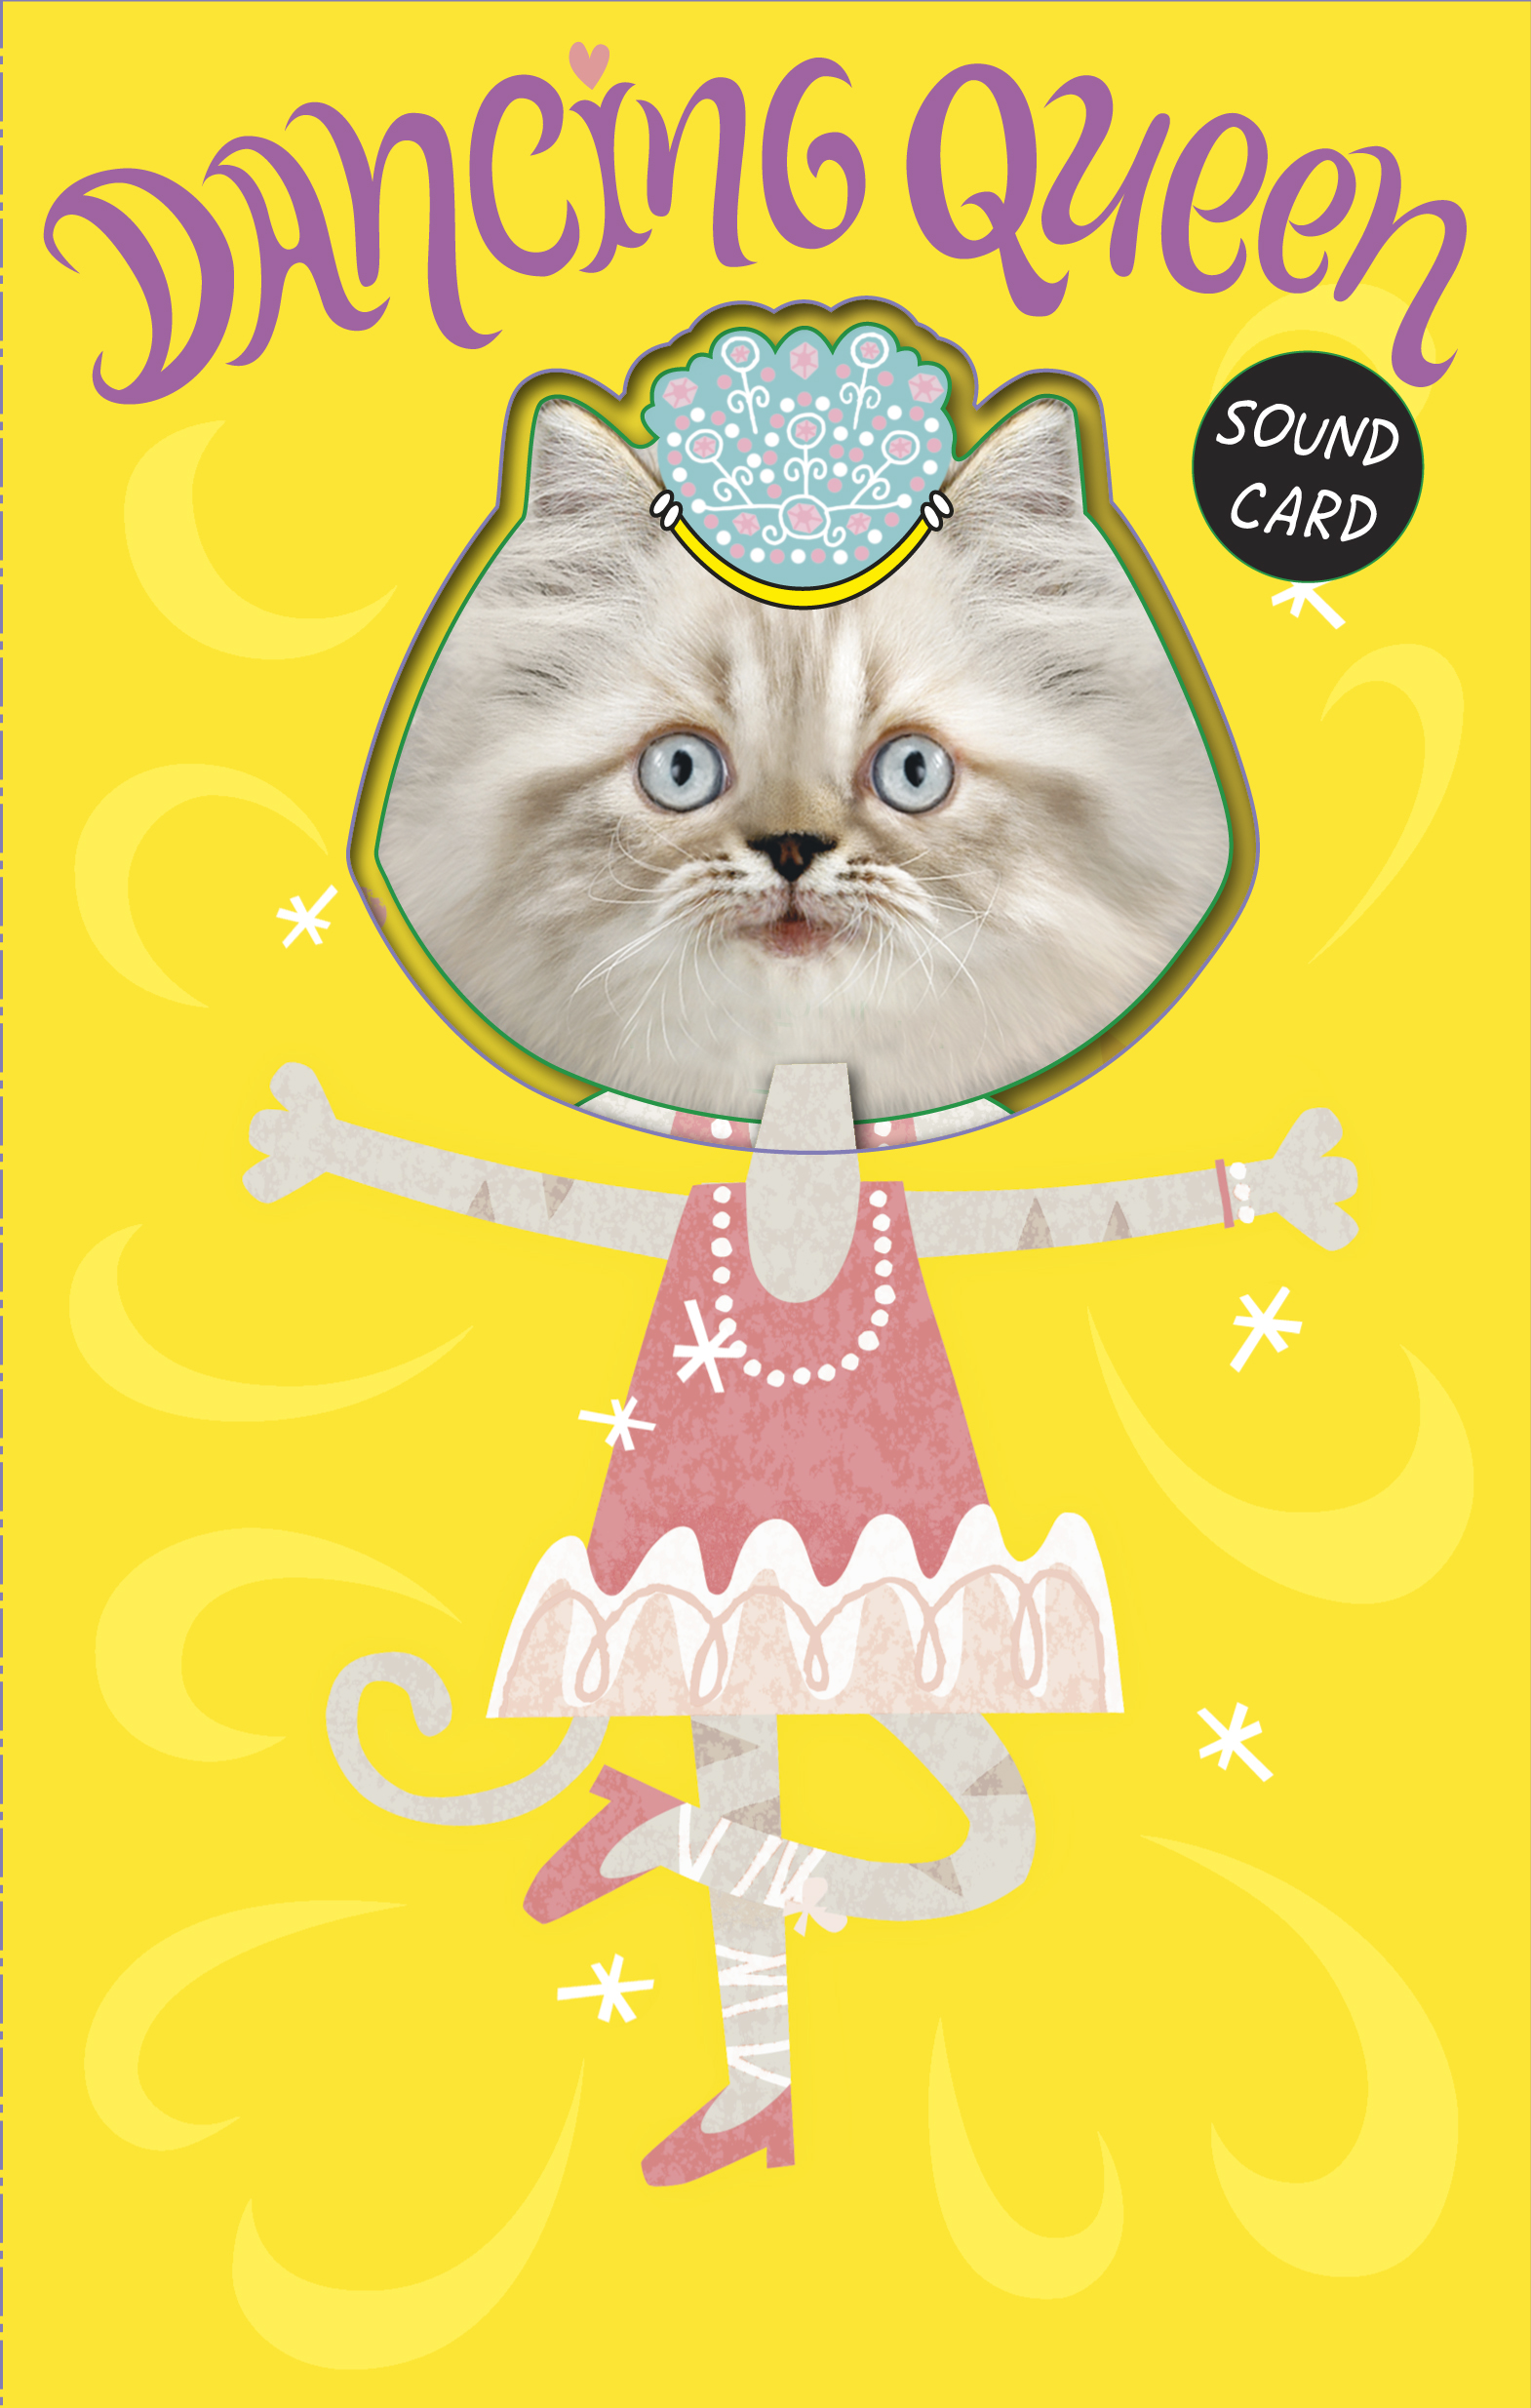 Best of cat birthday cards pics laughterisaleap funny dancing queen cat birthday sound card noisy inventions kristyandbryce Gallery